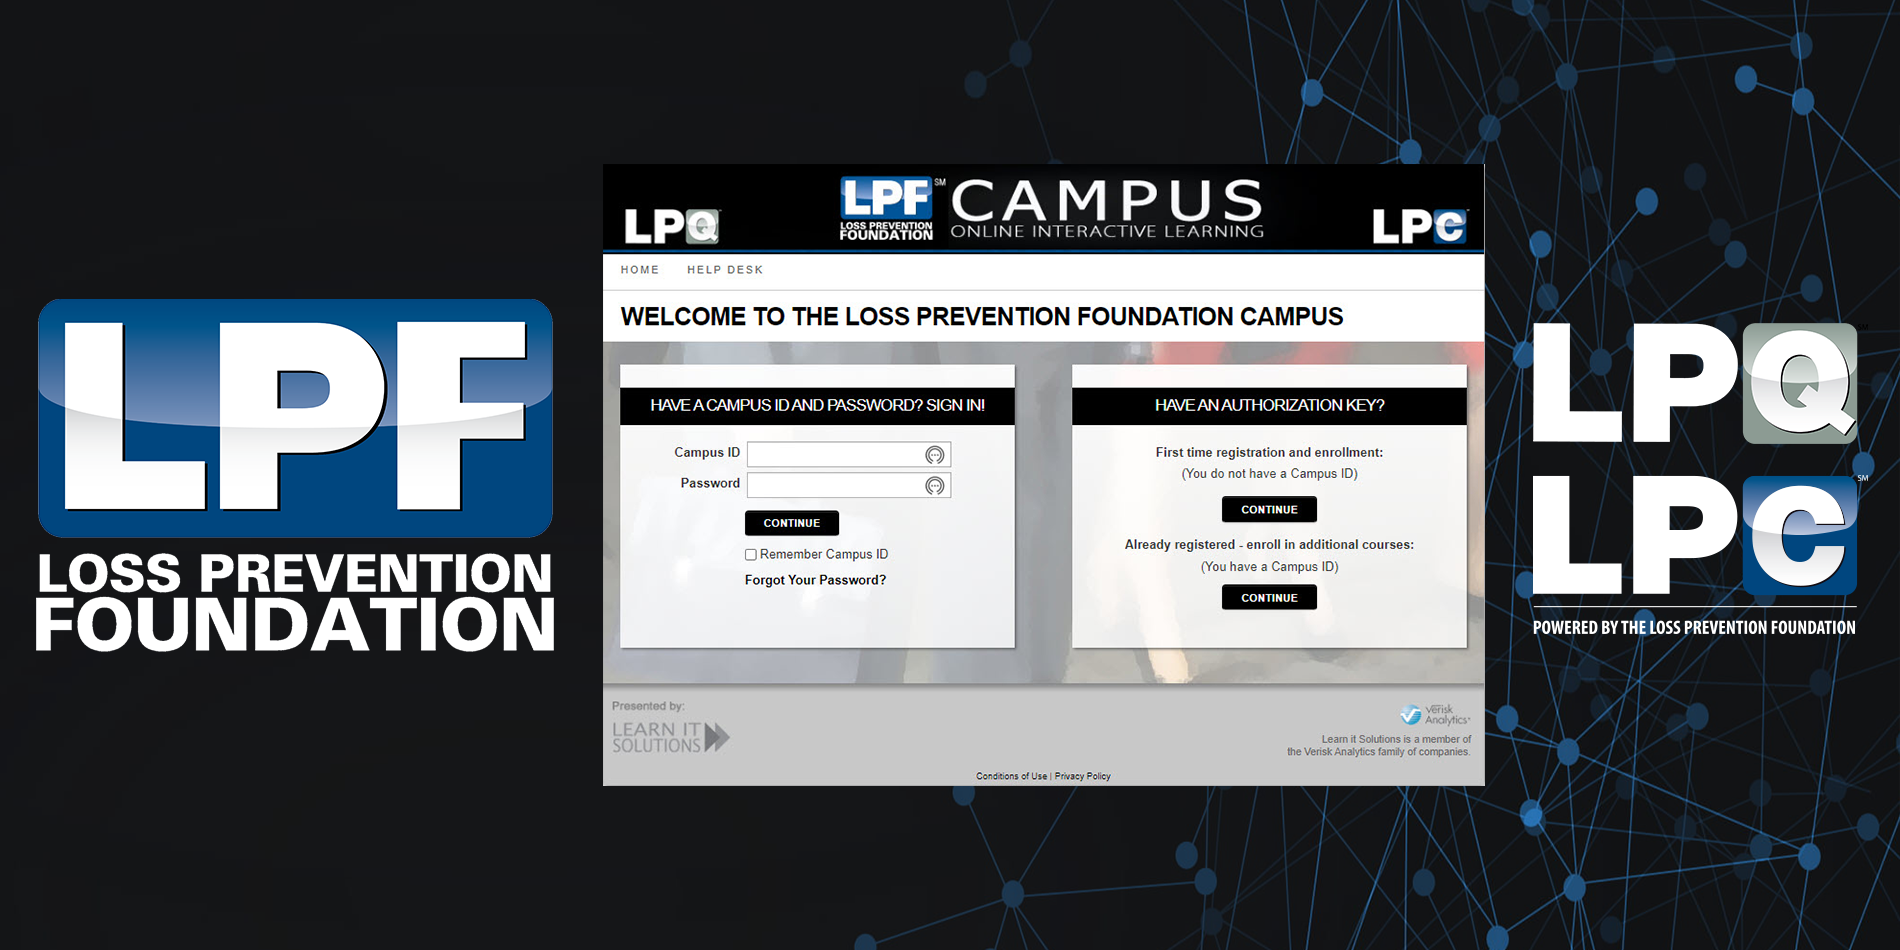 LPQ/LPC Course Campus